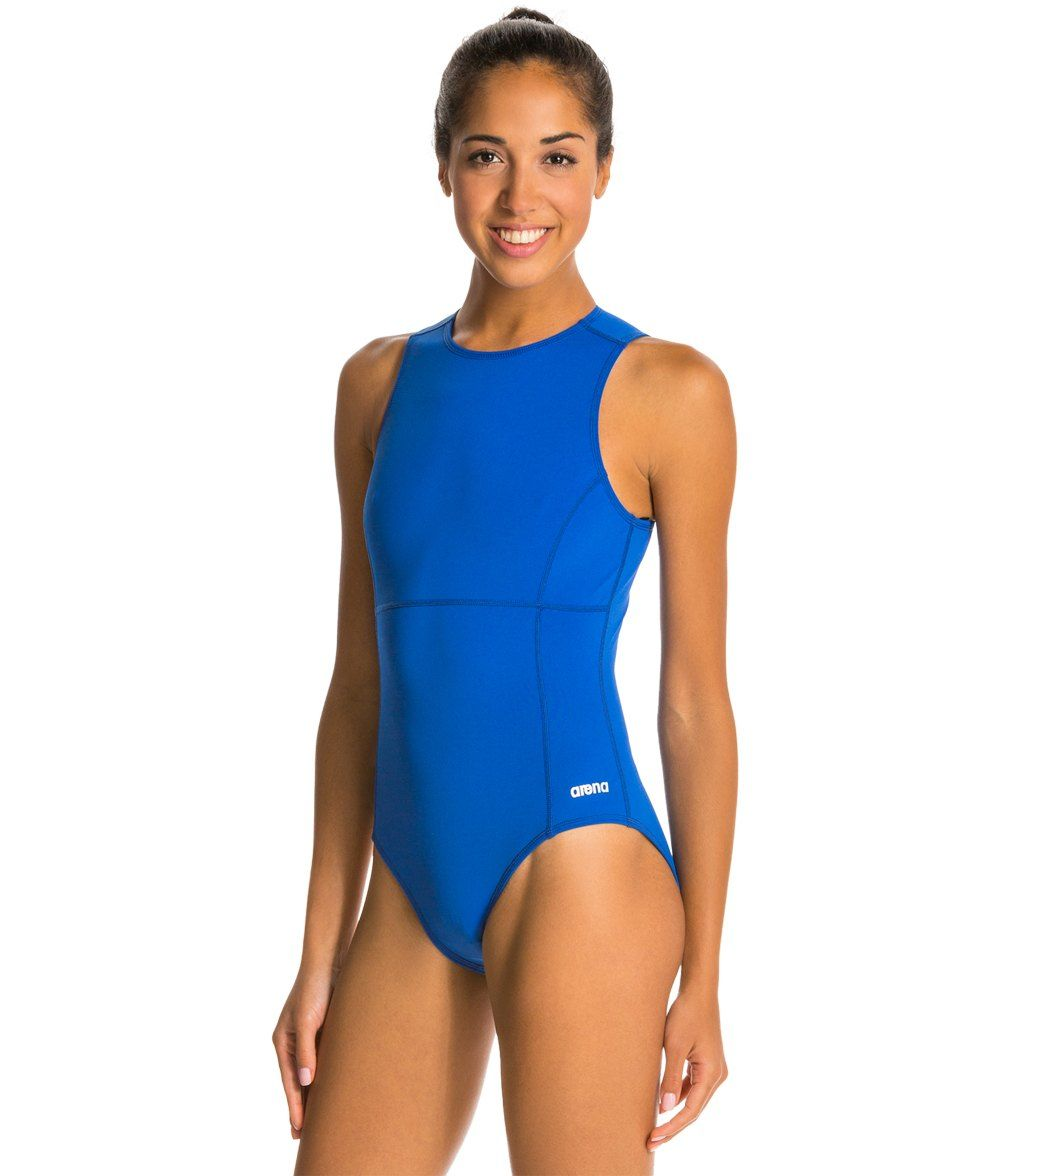 4feb7a1ea0 Arena Waterpolo One Piece Swimsuit at SwimOutlet.com - The Web s most  popular swim shop